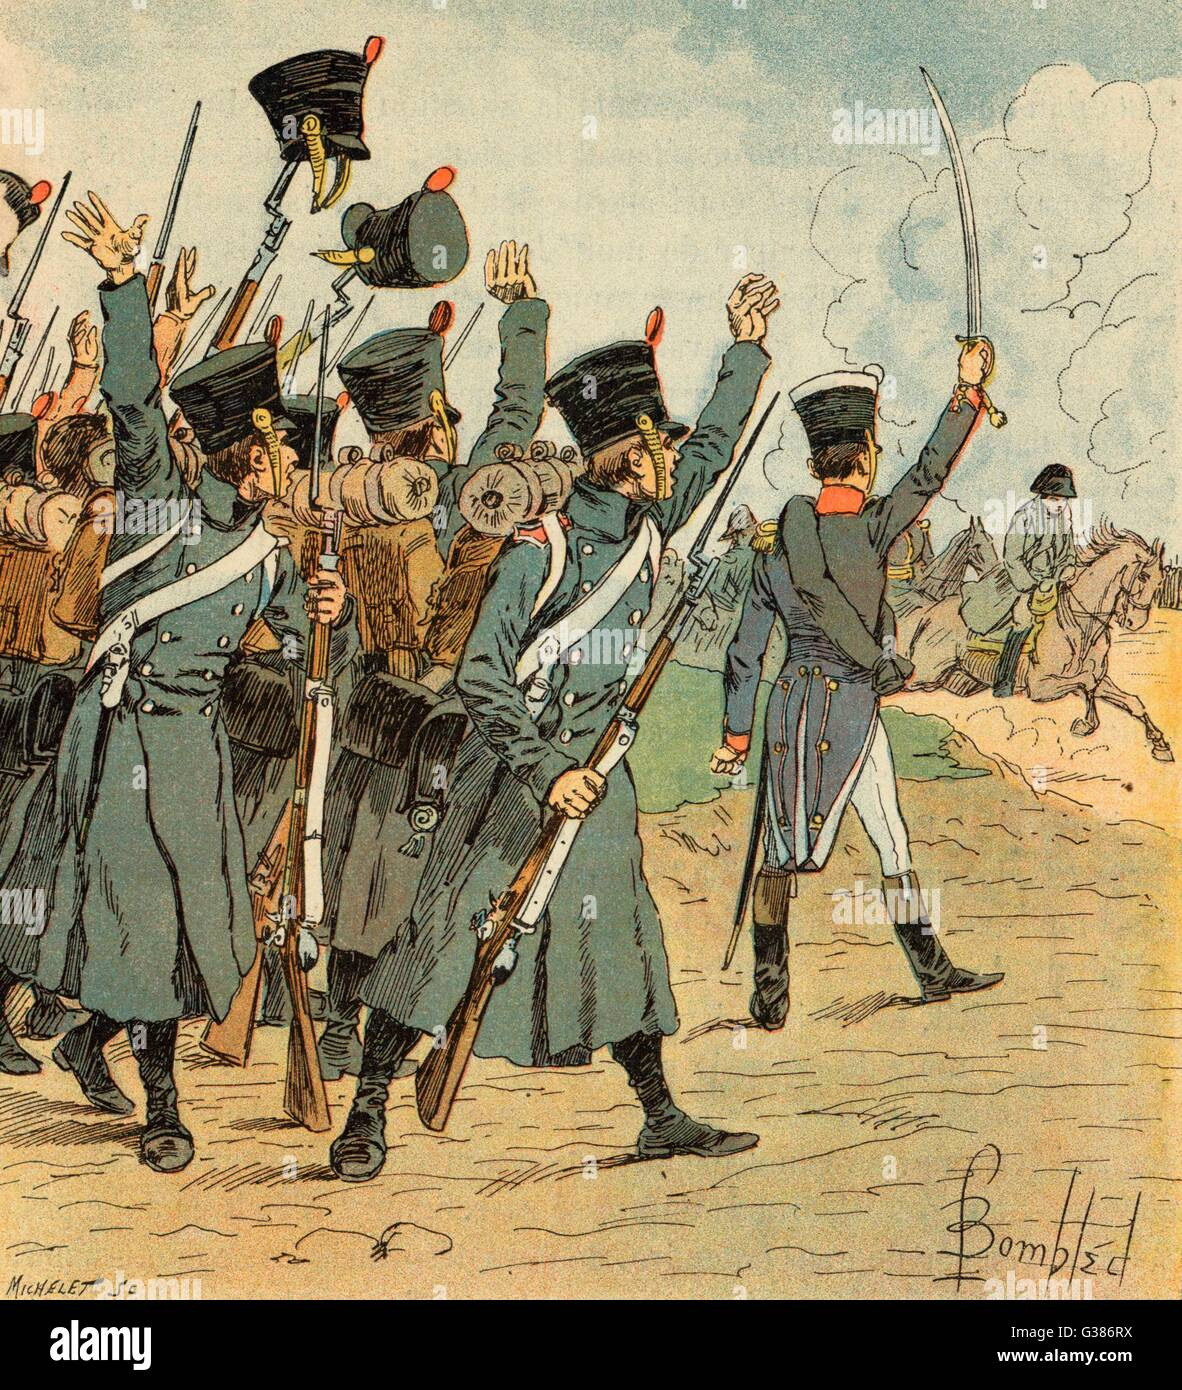 """'The rougher I treated them,  the louder they shouted """"Vive  l'Empereur !""""'        Date: 1815 Stock Photo"""